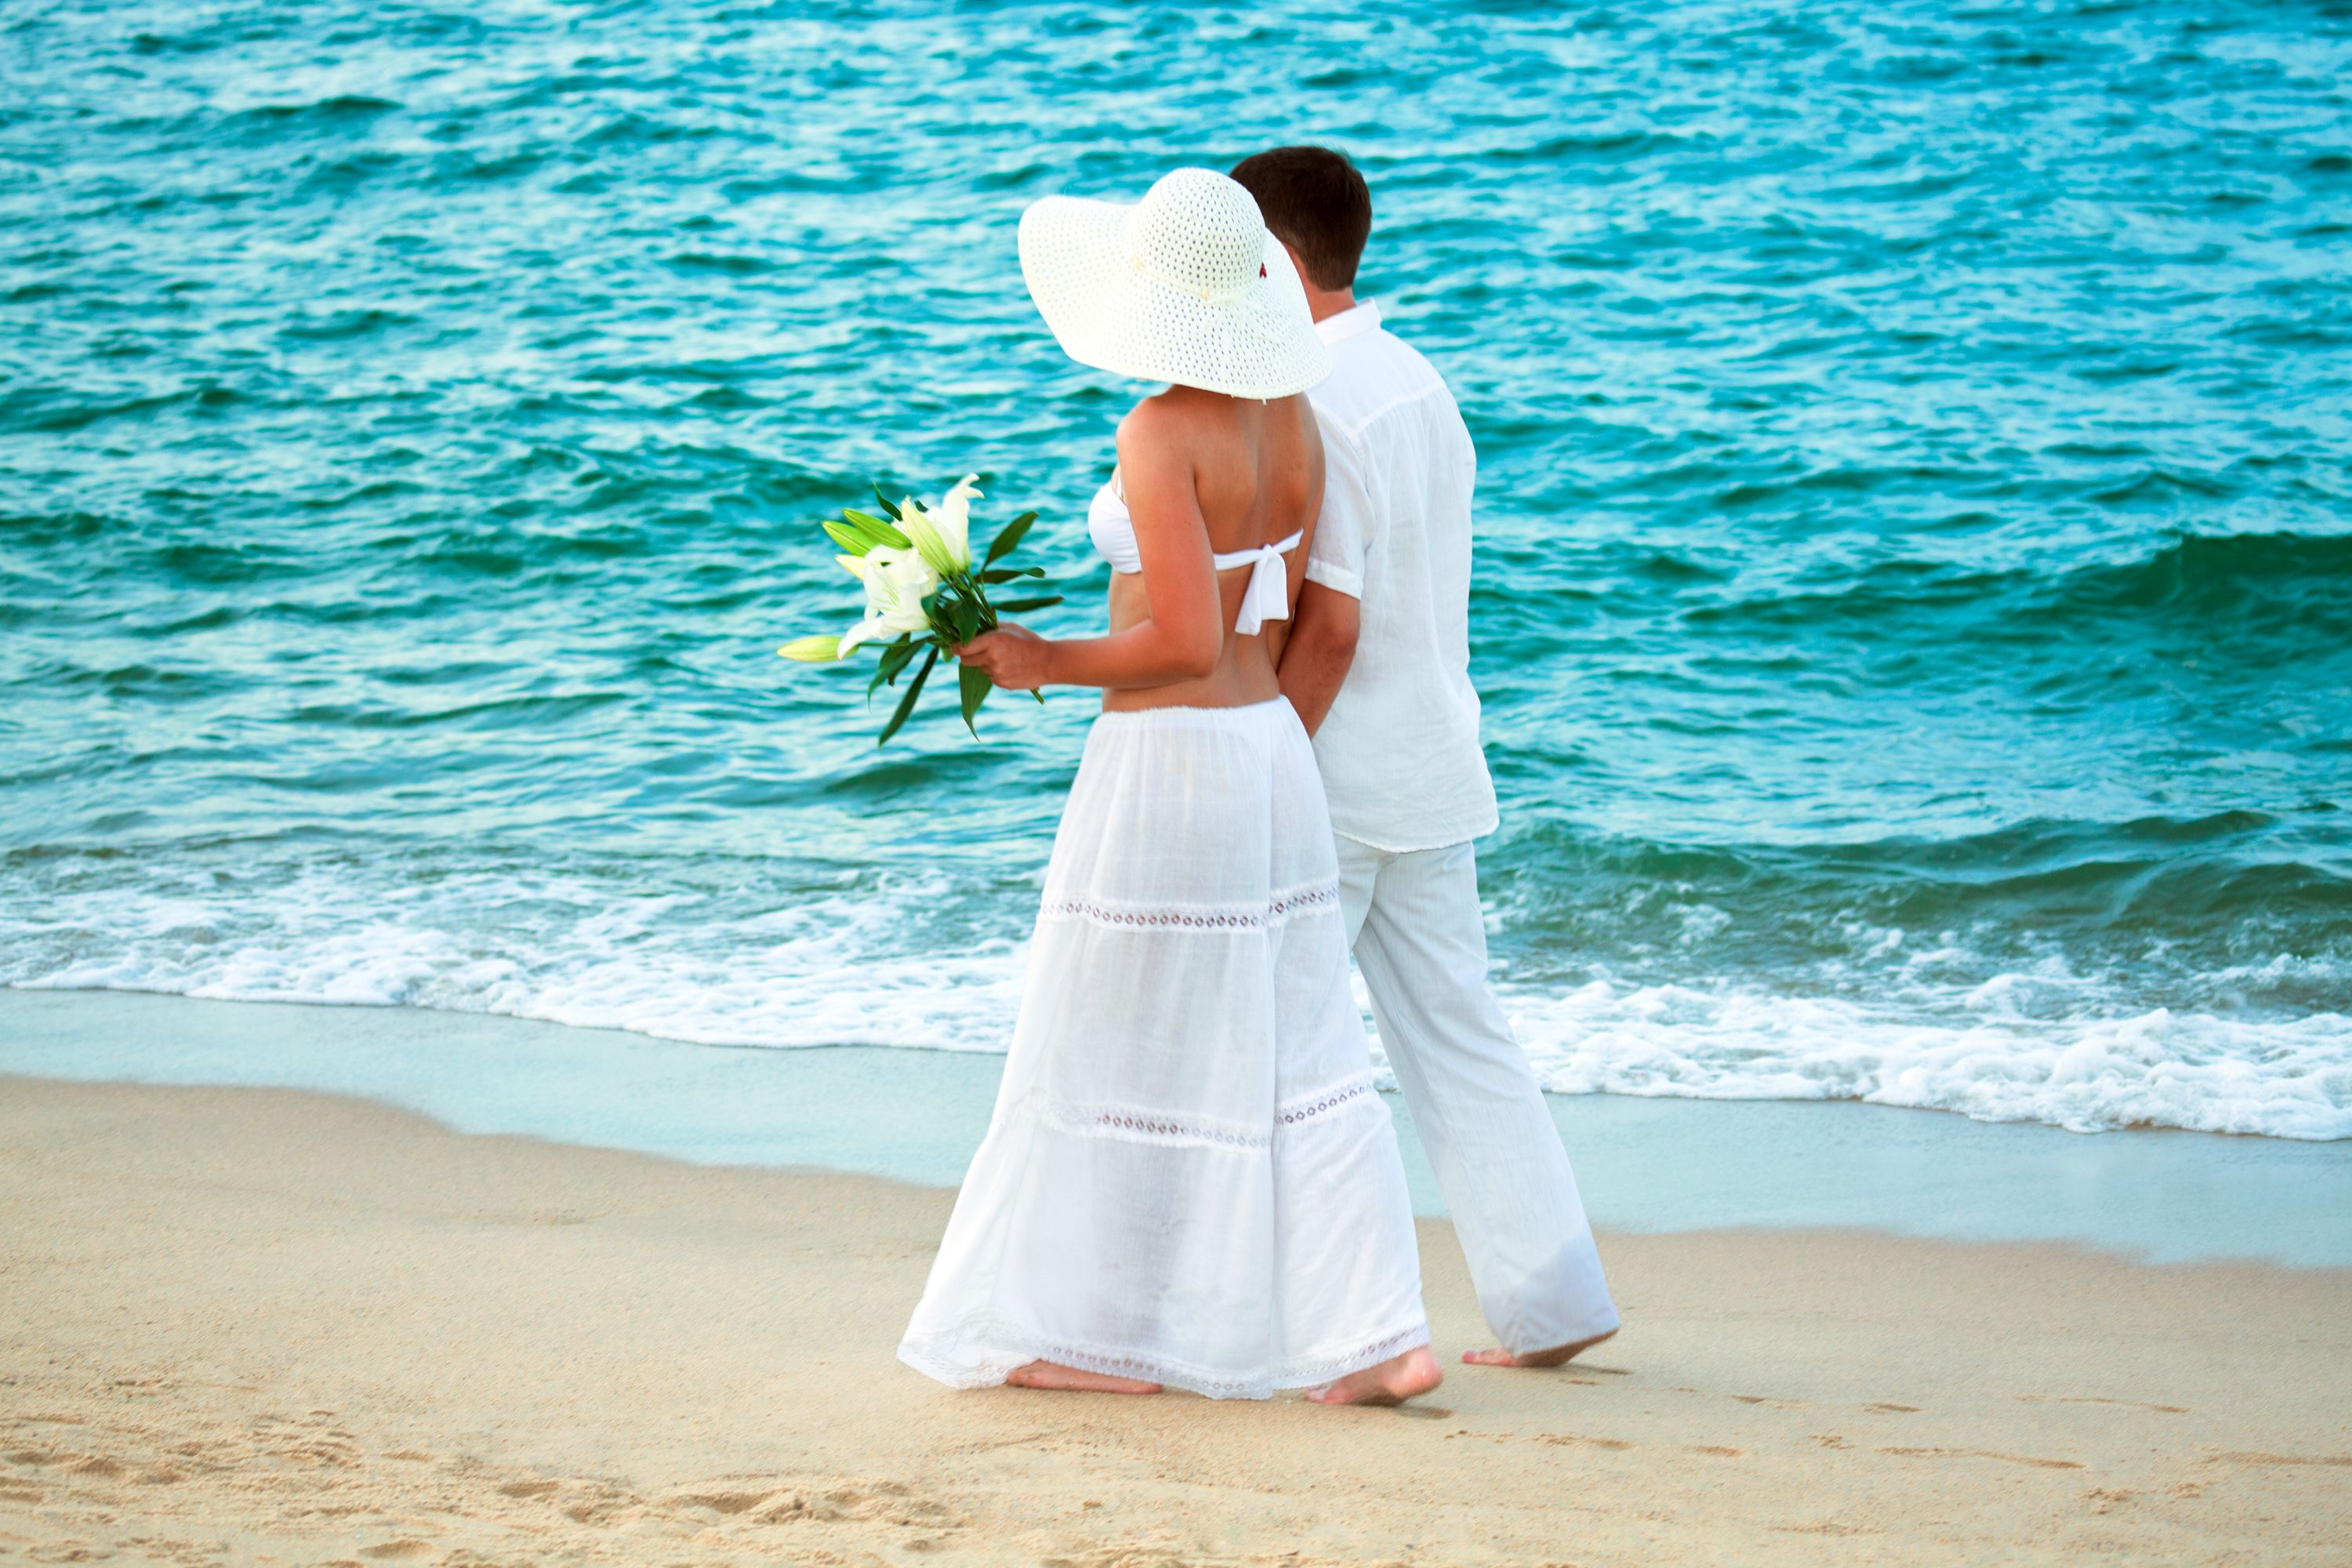 All Inclusive Weddings Read About The Kinds Of Things That Are Typically Included In Bahamas Wedding Packages